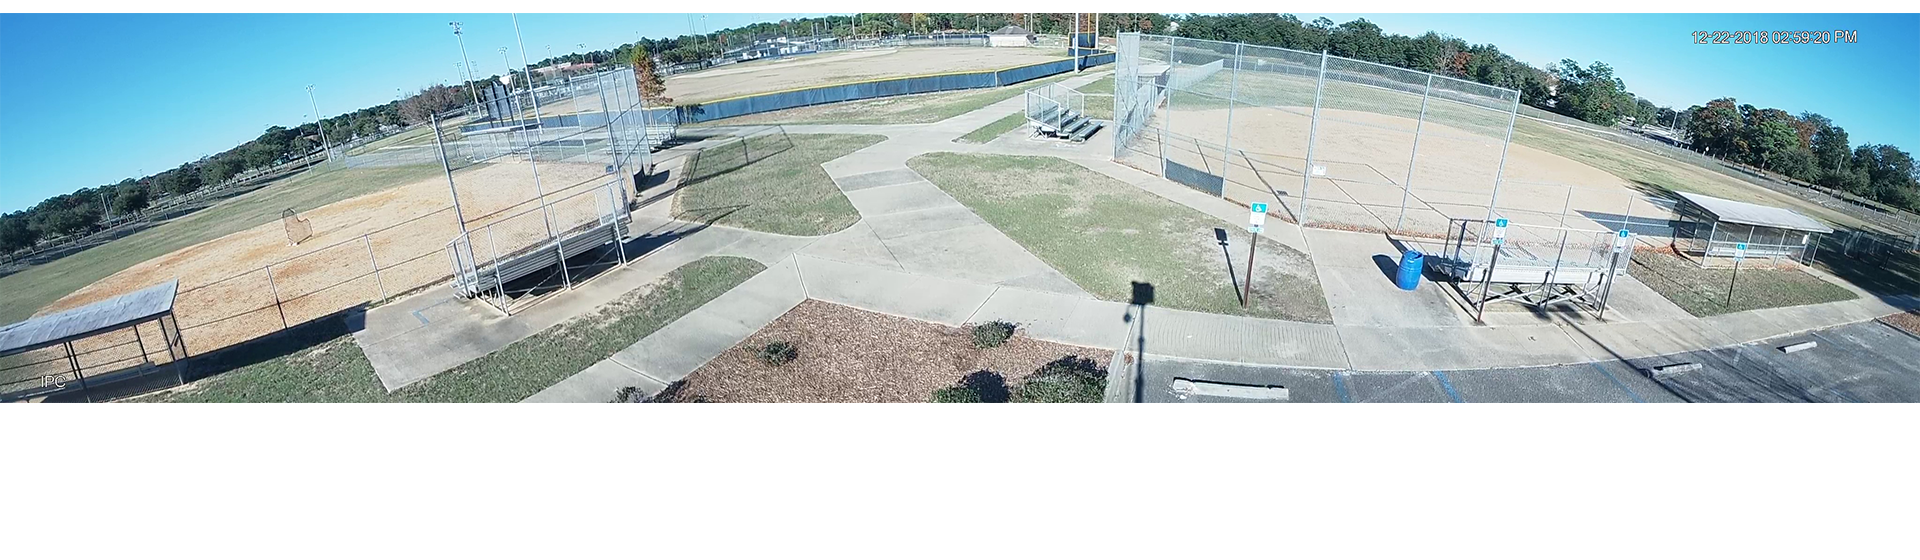 Solar powered event surveillance - Baseball Field